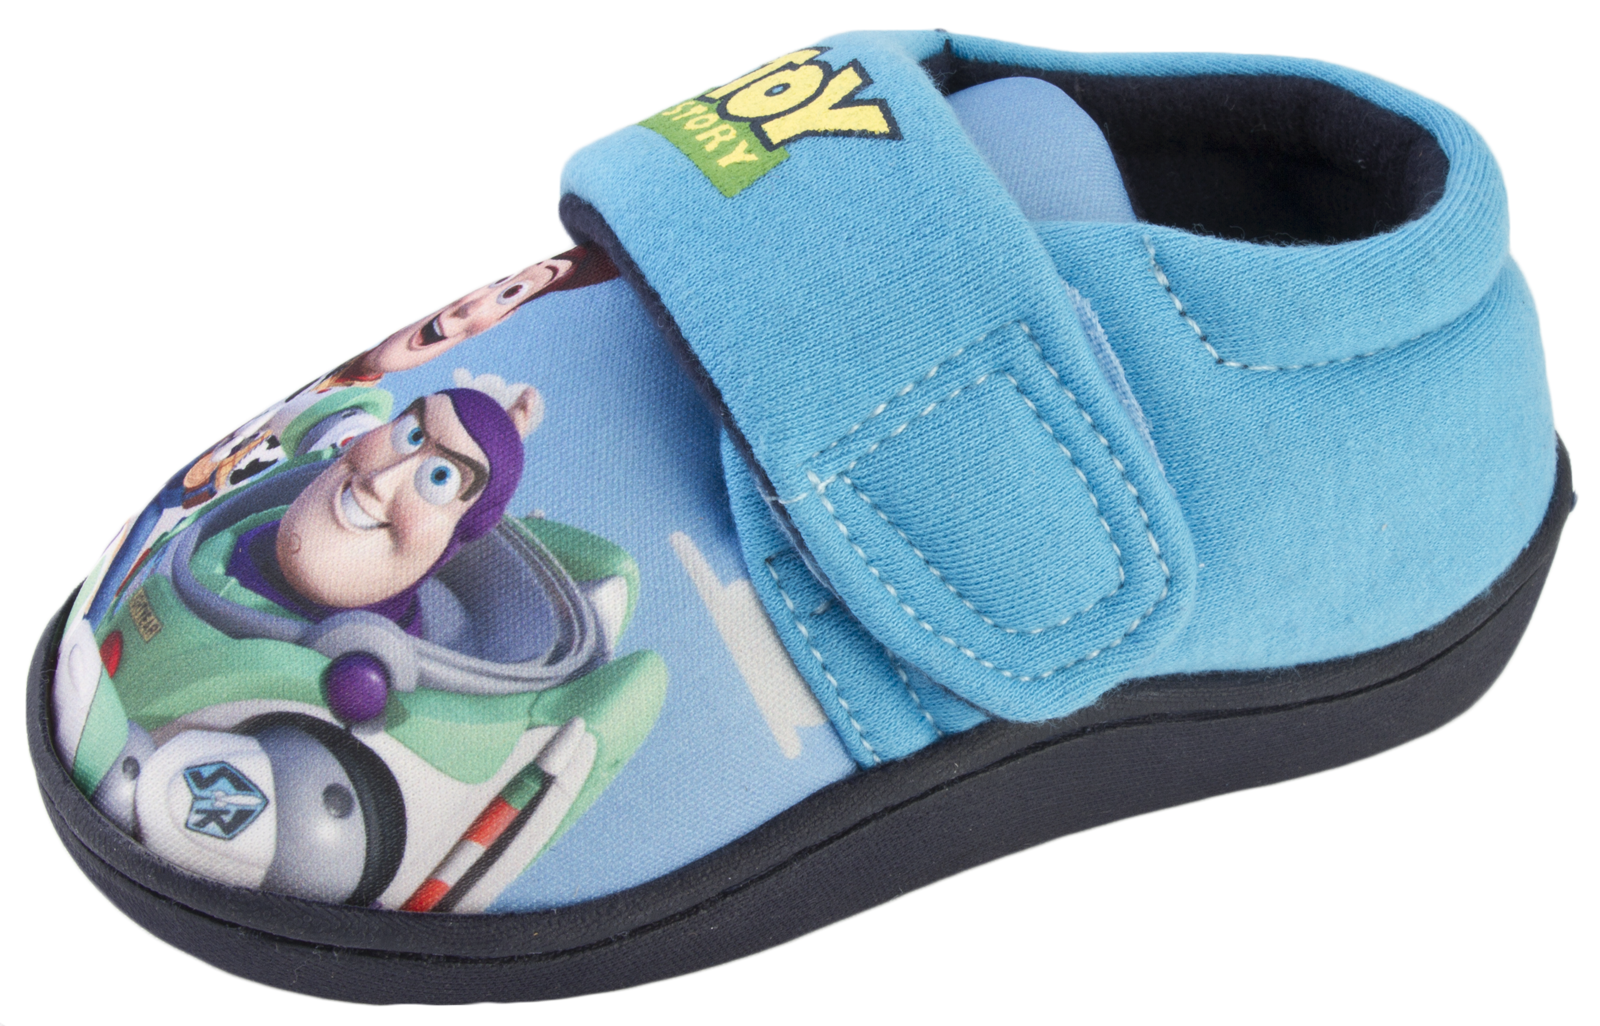 Toy Story Slippers : Disney toy story slippers comfort booties buzz lightyear